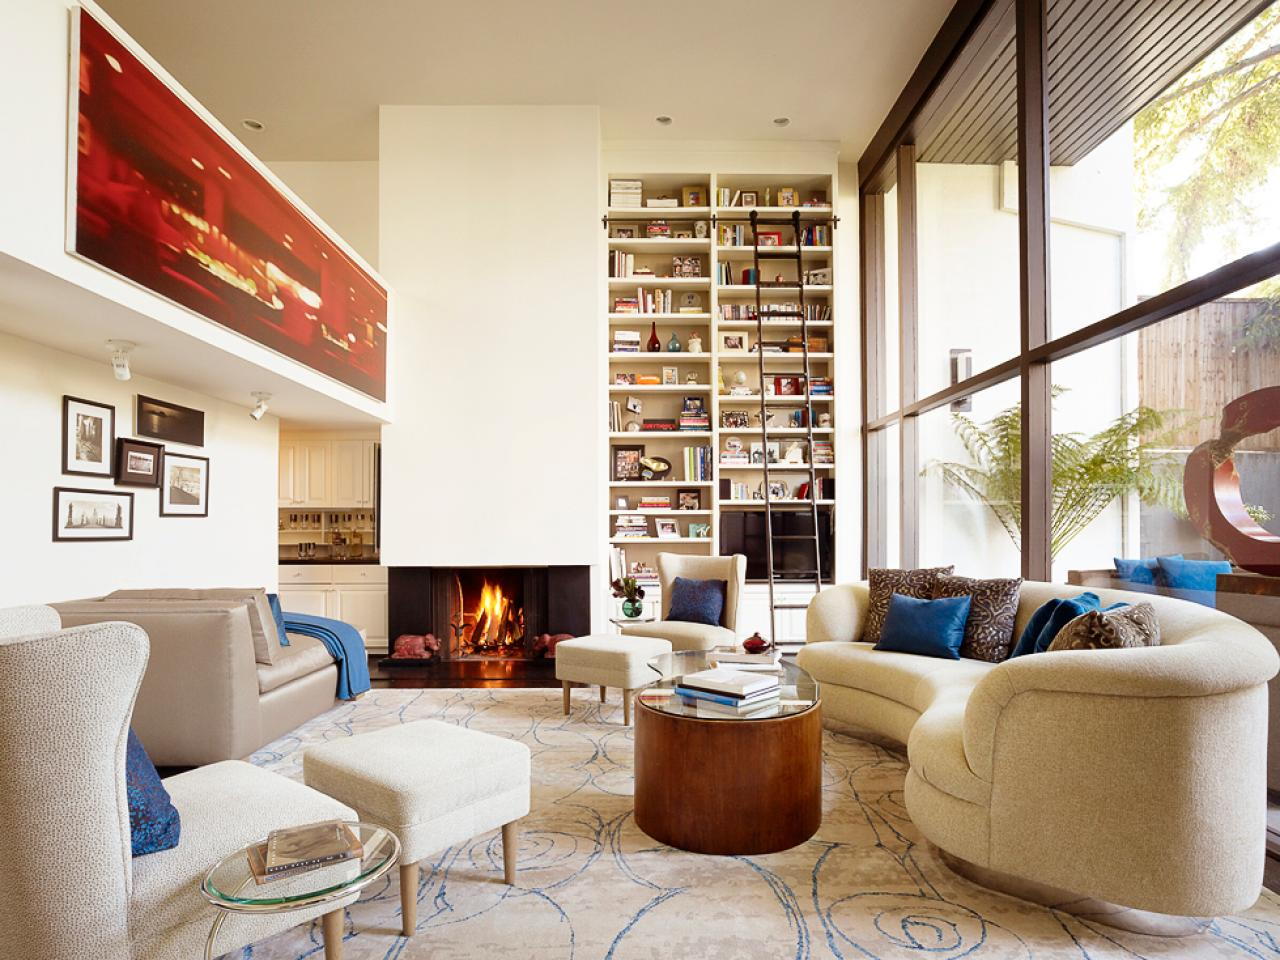 Long Living Room Design Ideas narrow with fire place 1930s house living room ideas pinterest seating areas living room designs and teal couch Long Living Rooms